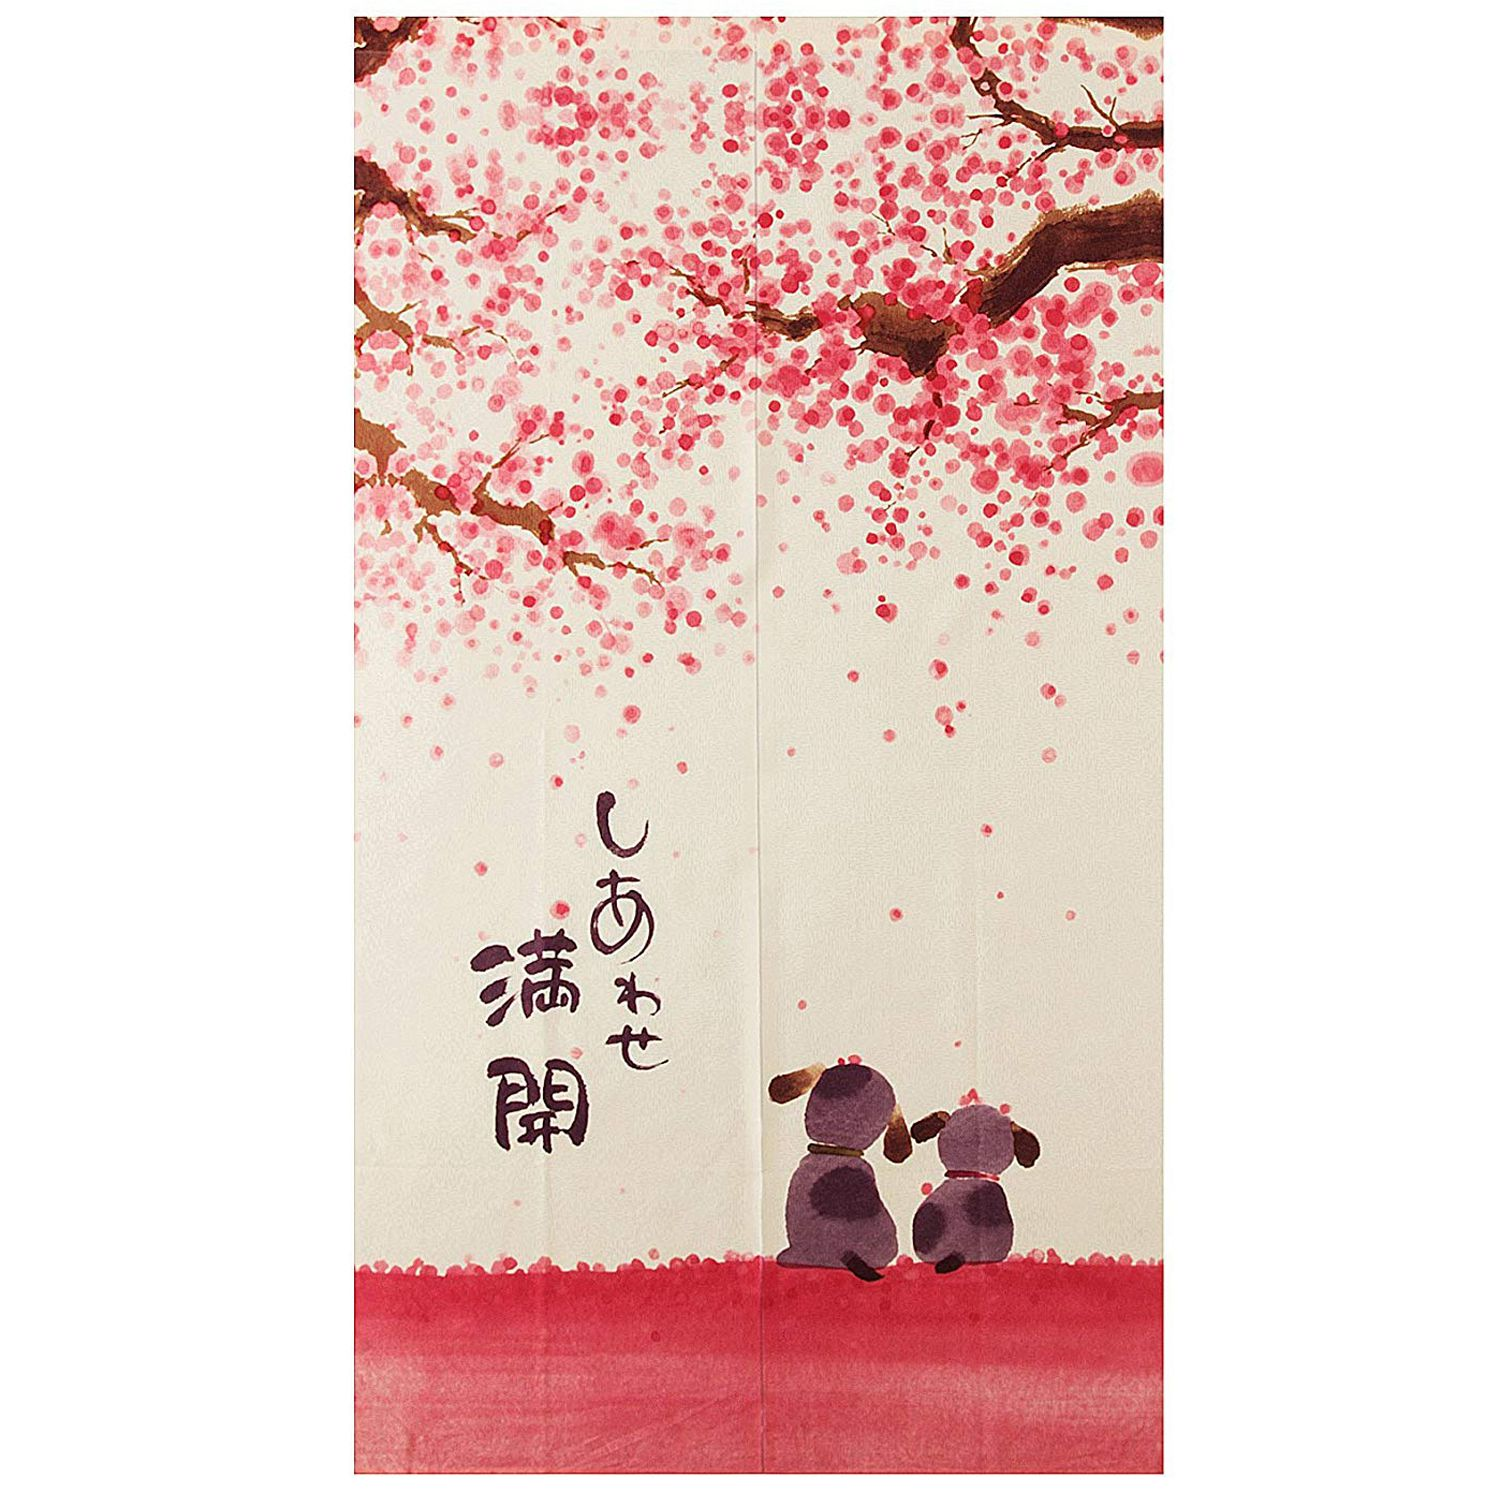 TOP!-Japanese Style Doorway Curtain 85X150Cm Happy Dogs Cherry Blossom